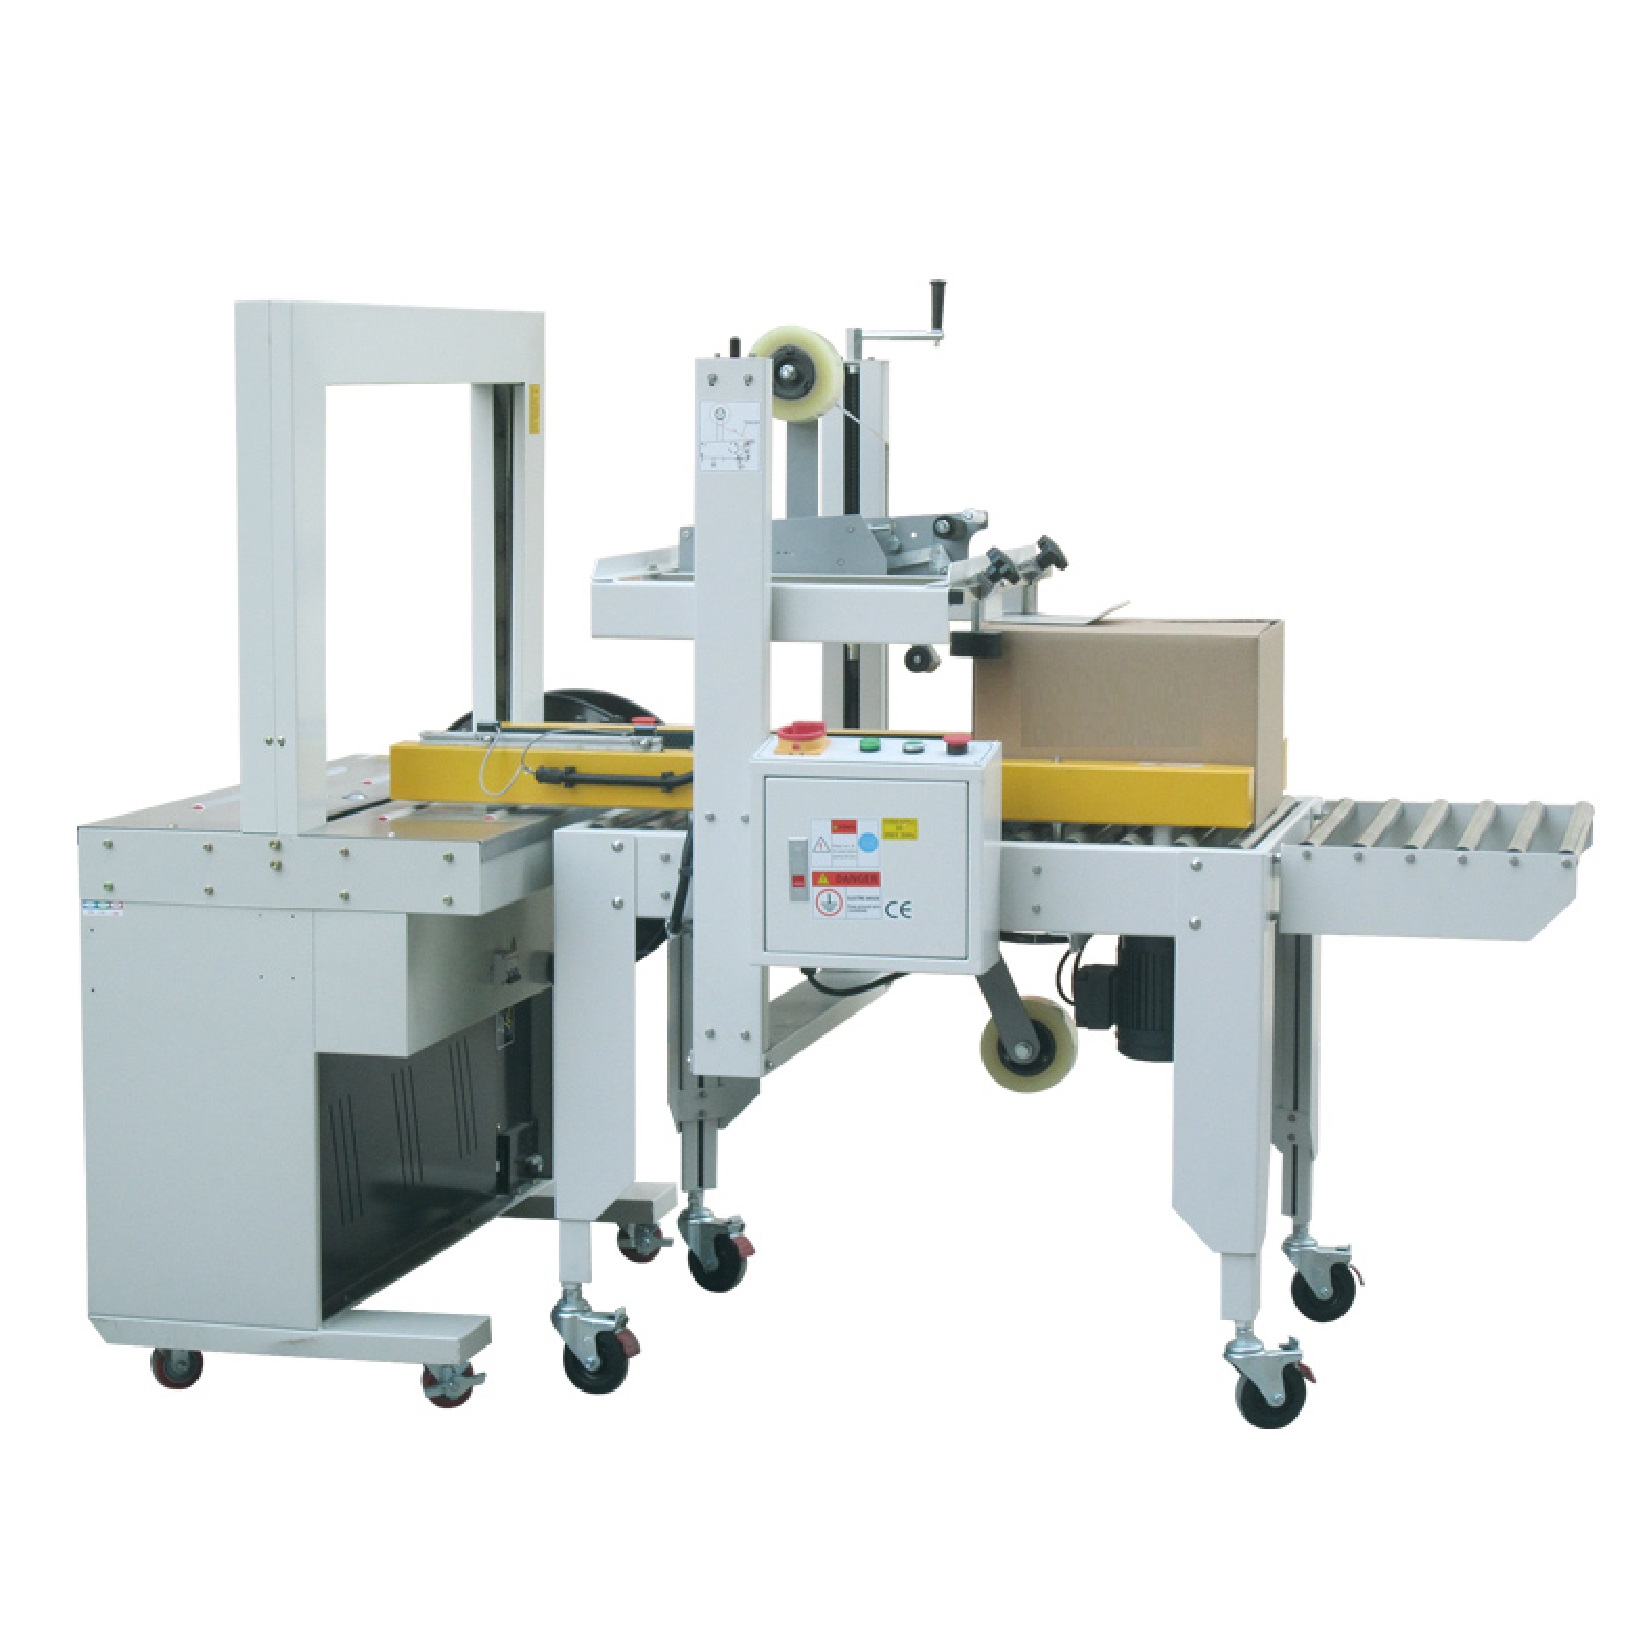 Carton sealer and strapping – OCSS-50A